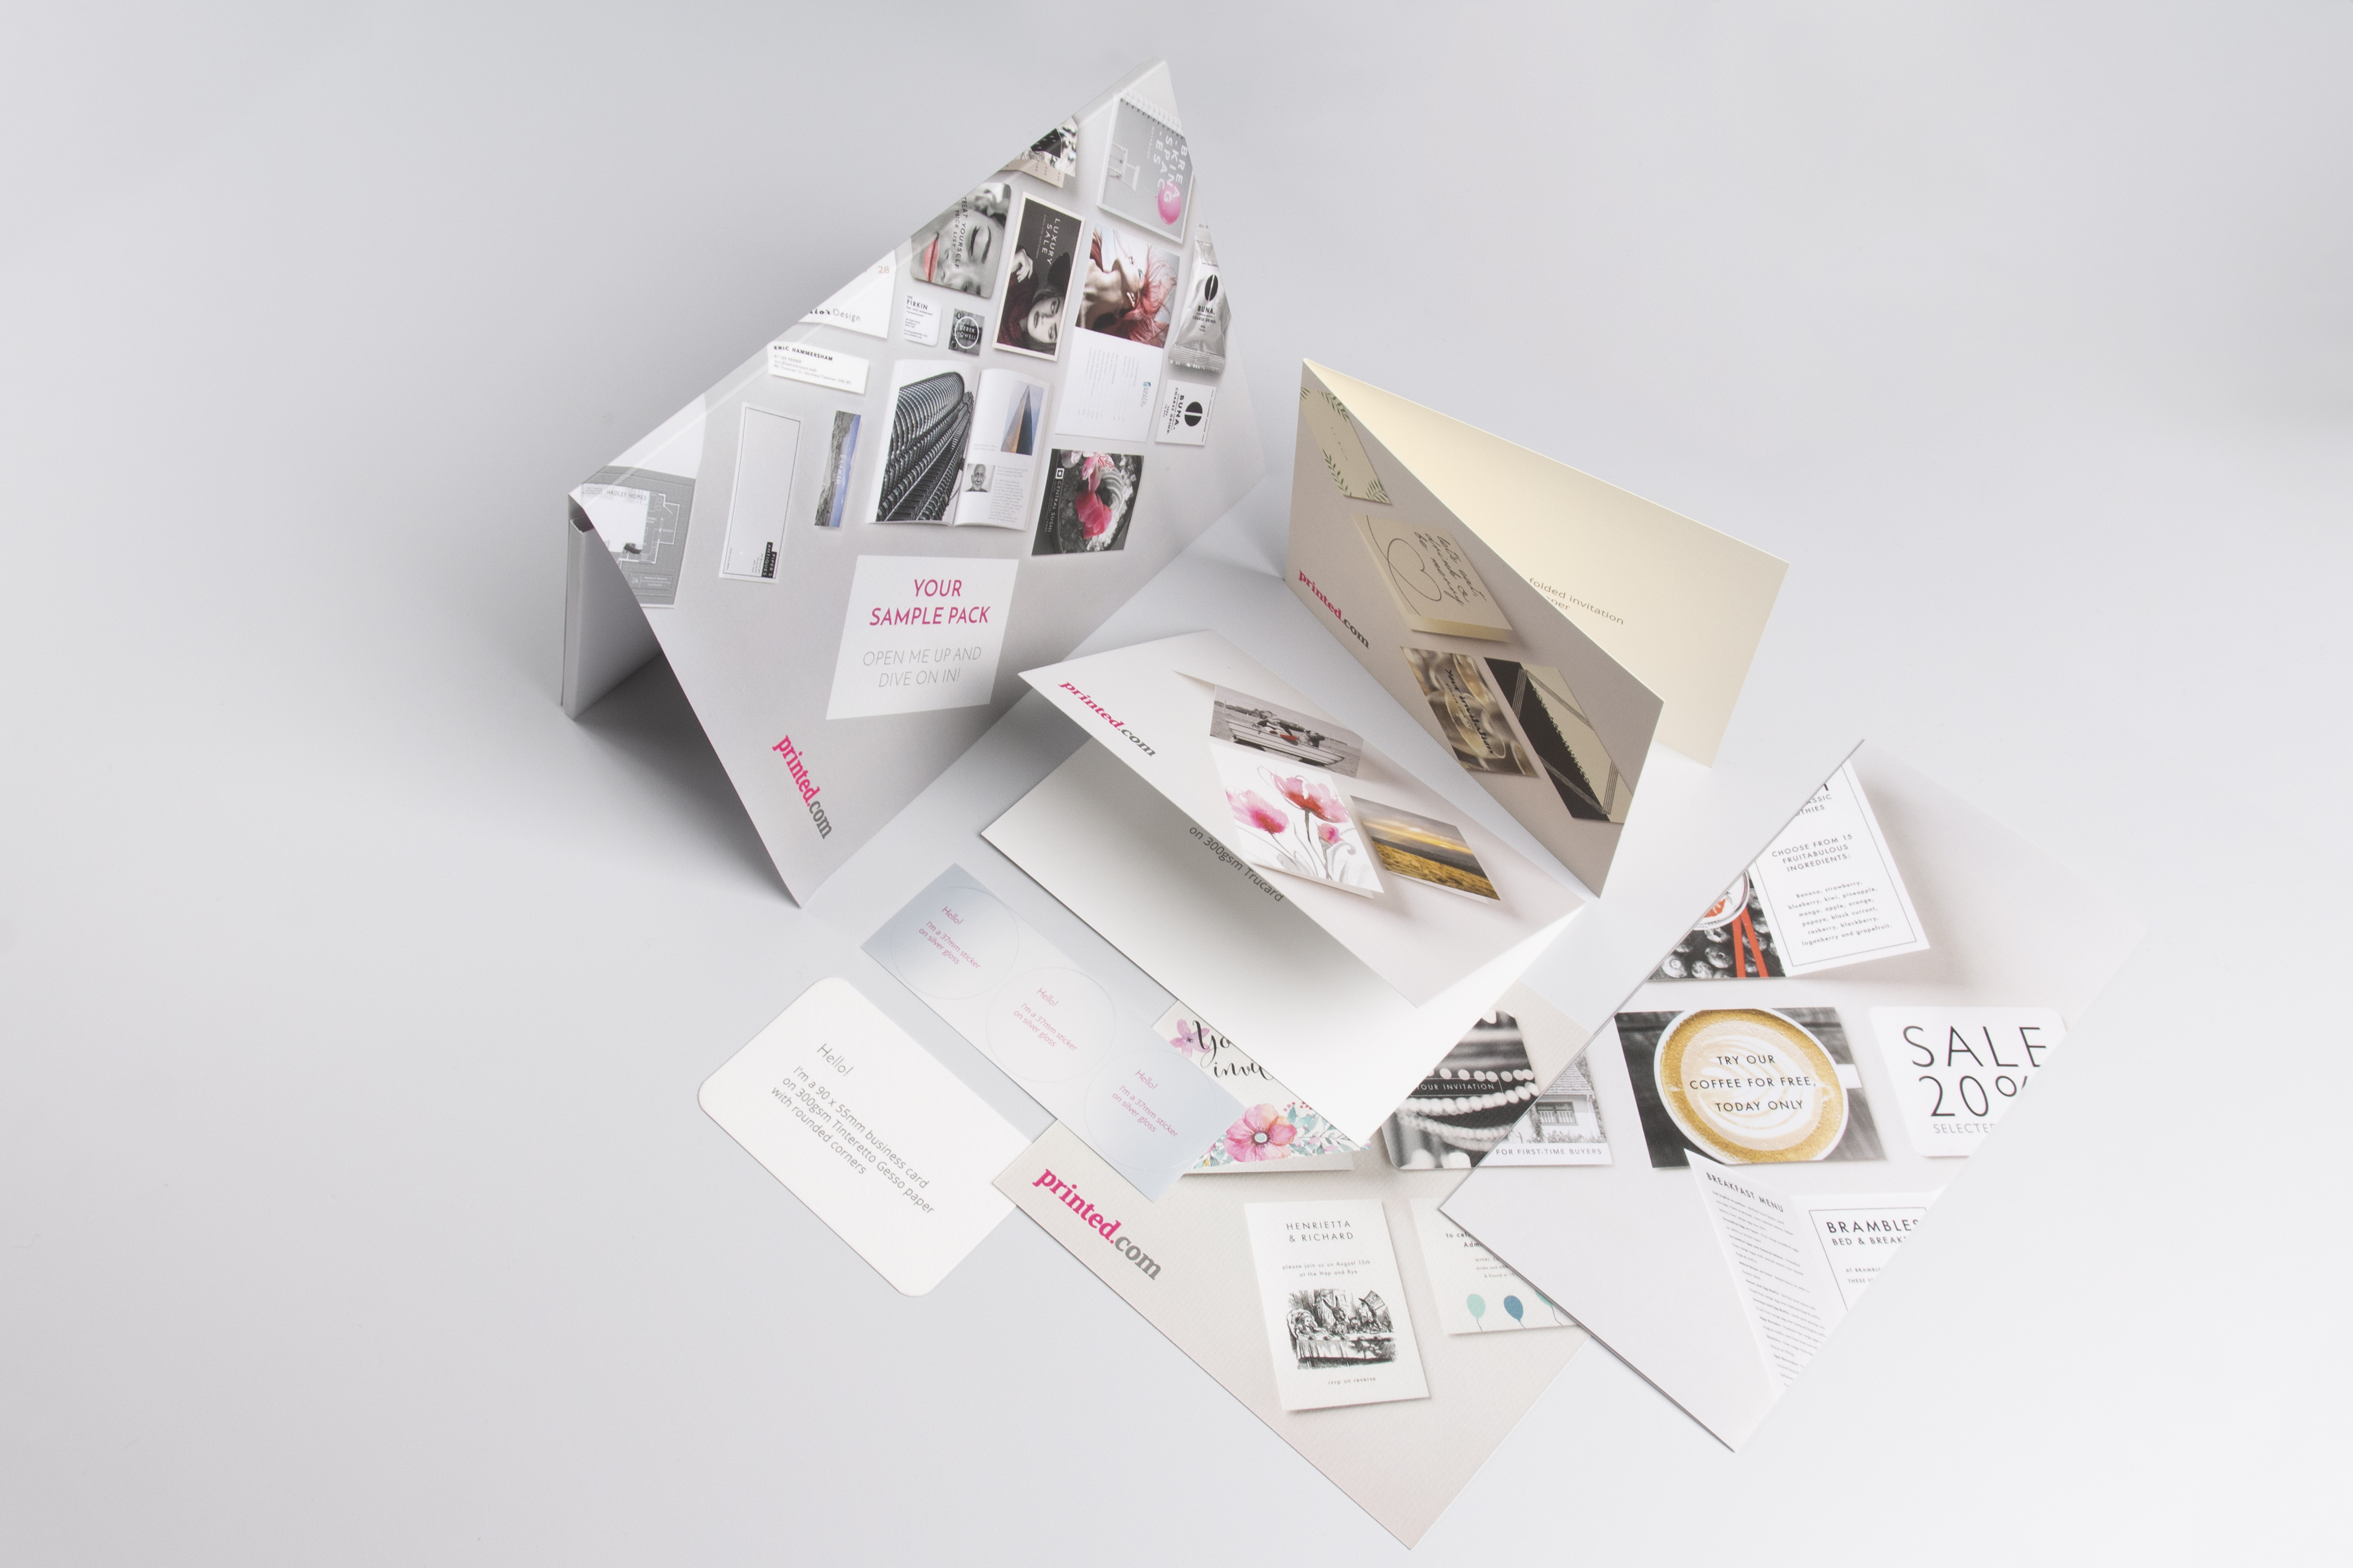 Image of product samples